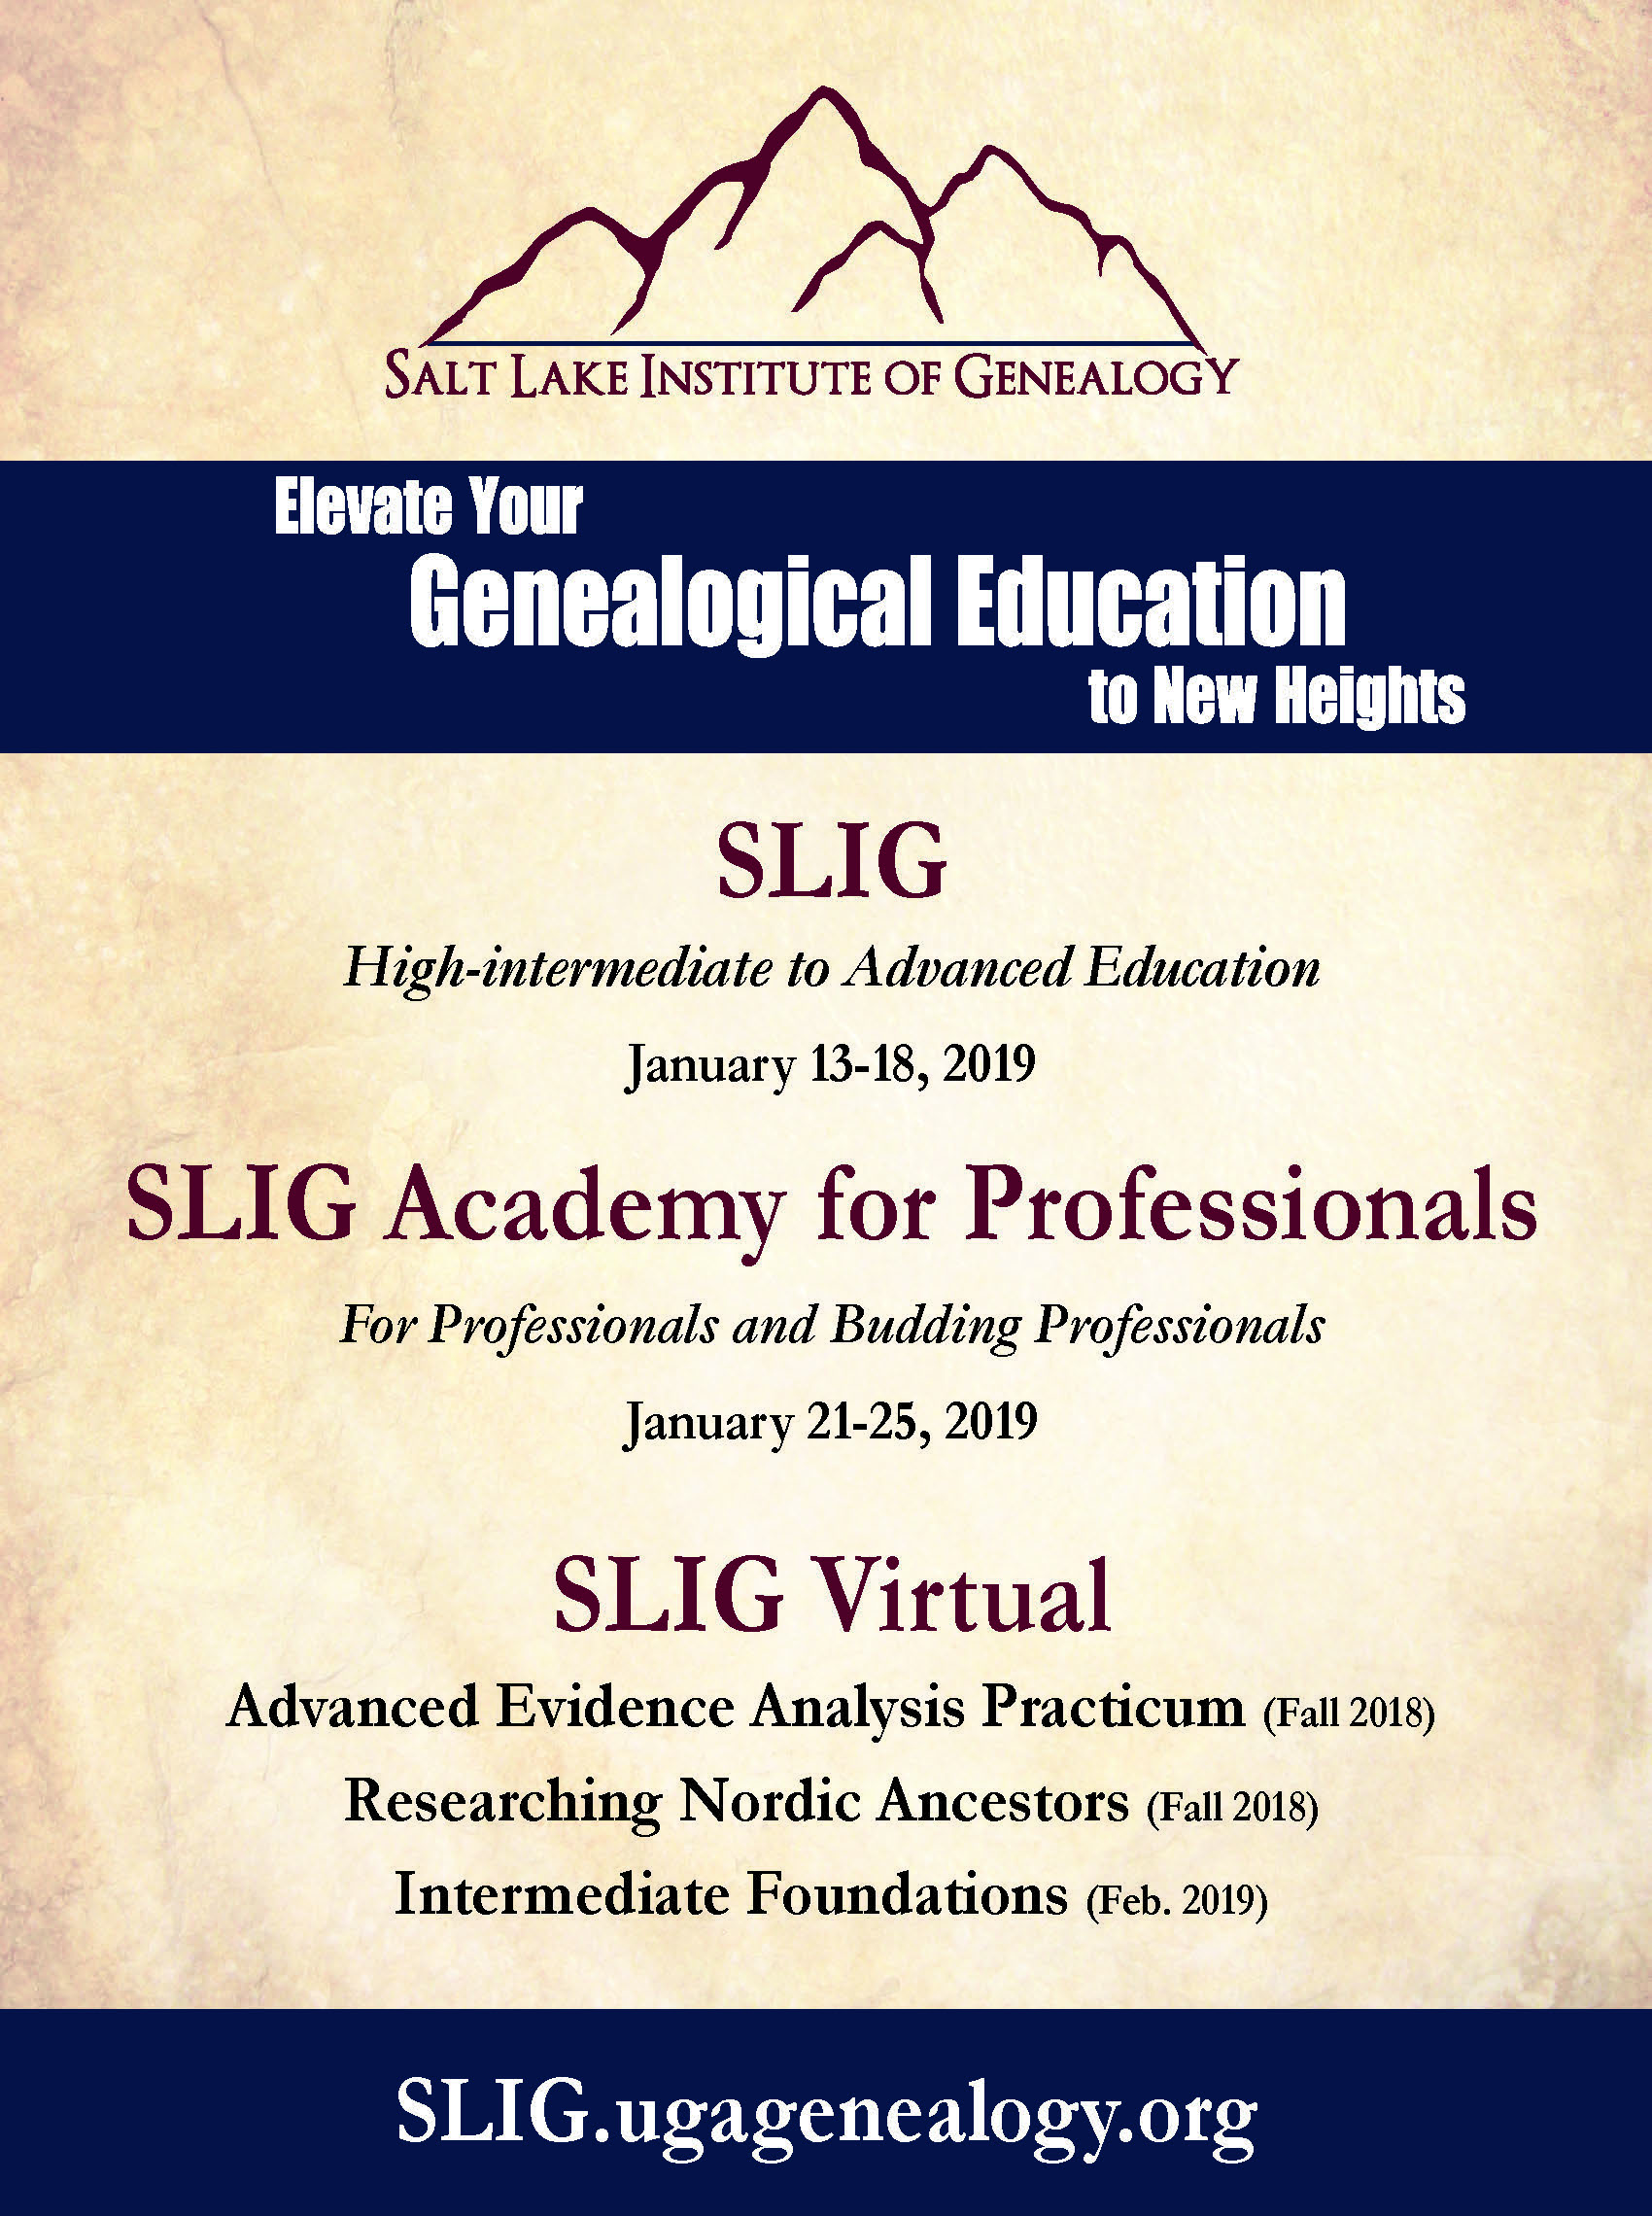 SLIG: Fall 2018 and January 2019 Programs